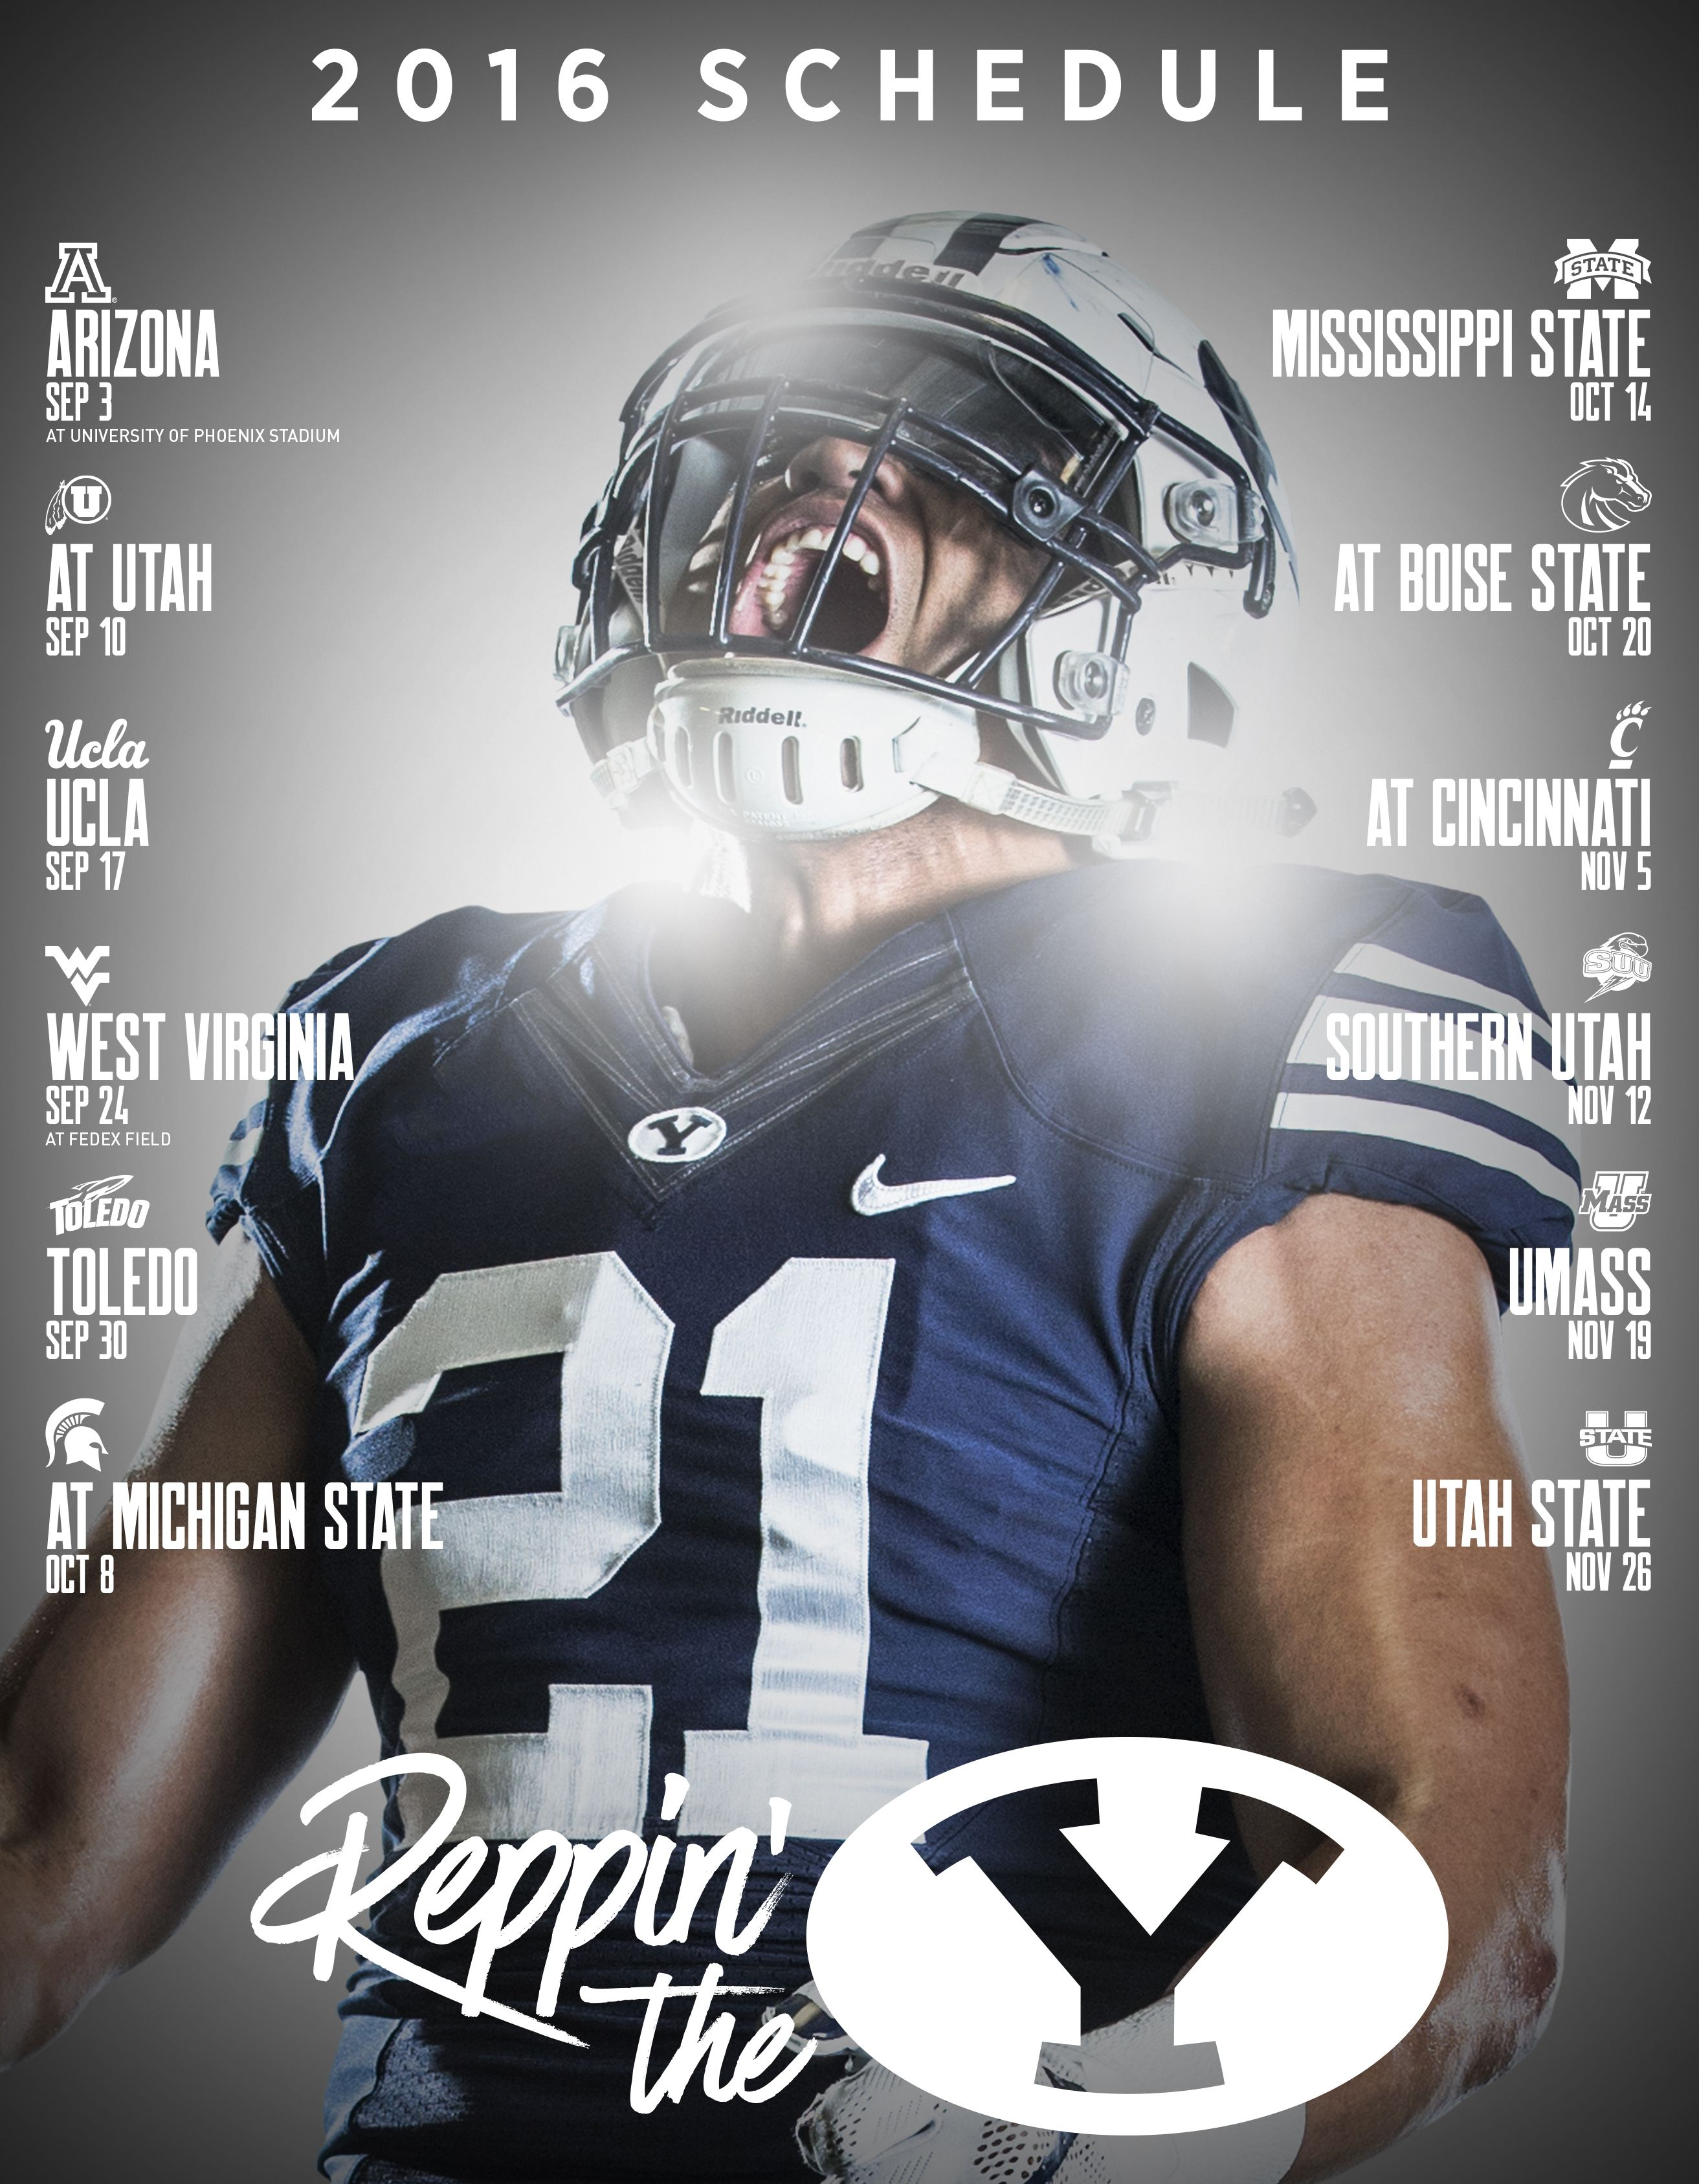 BYU CollegeFootball Recruiting Mississippi state